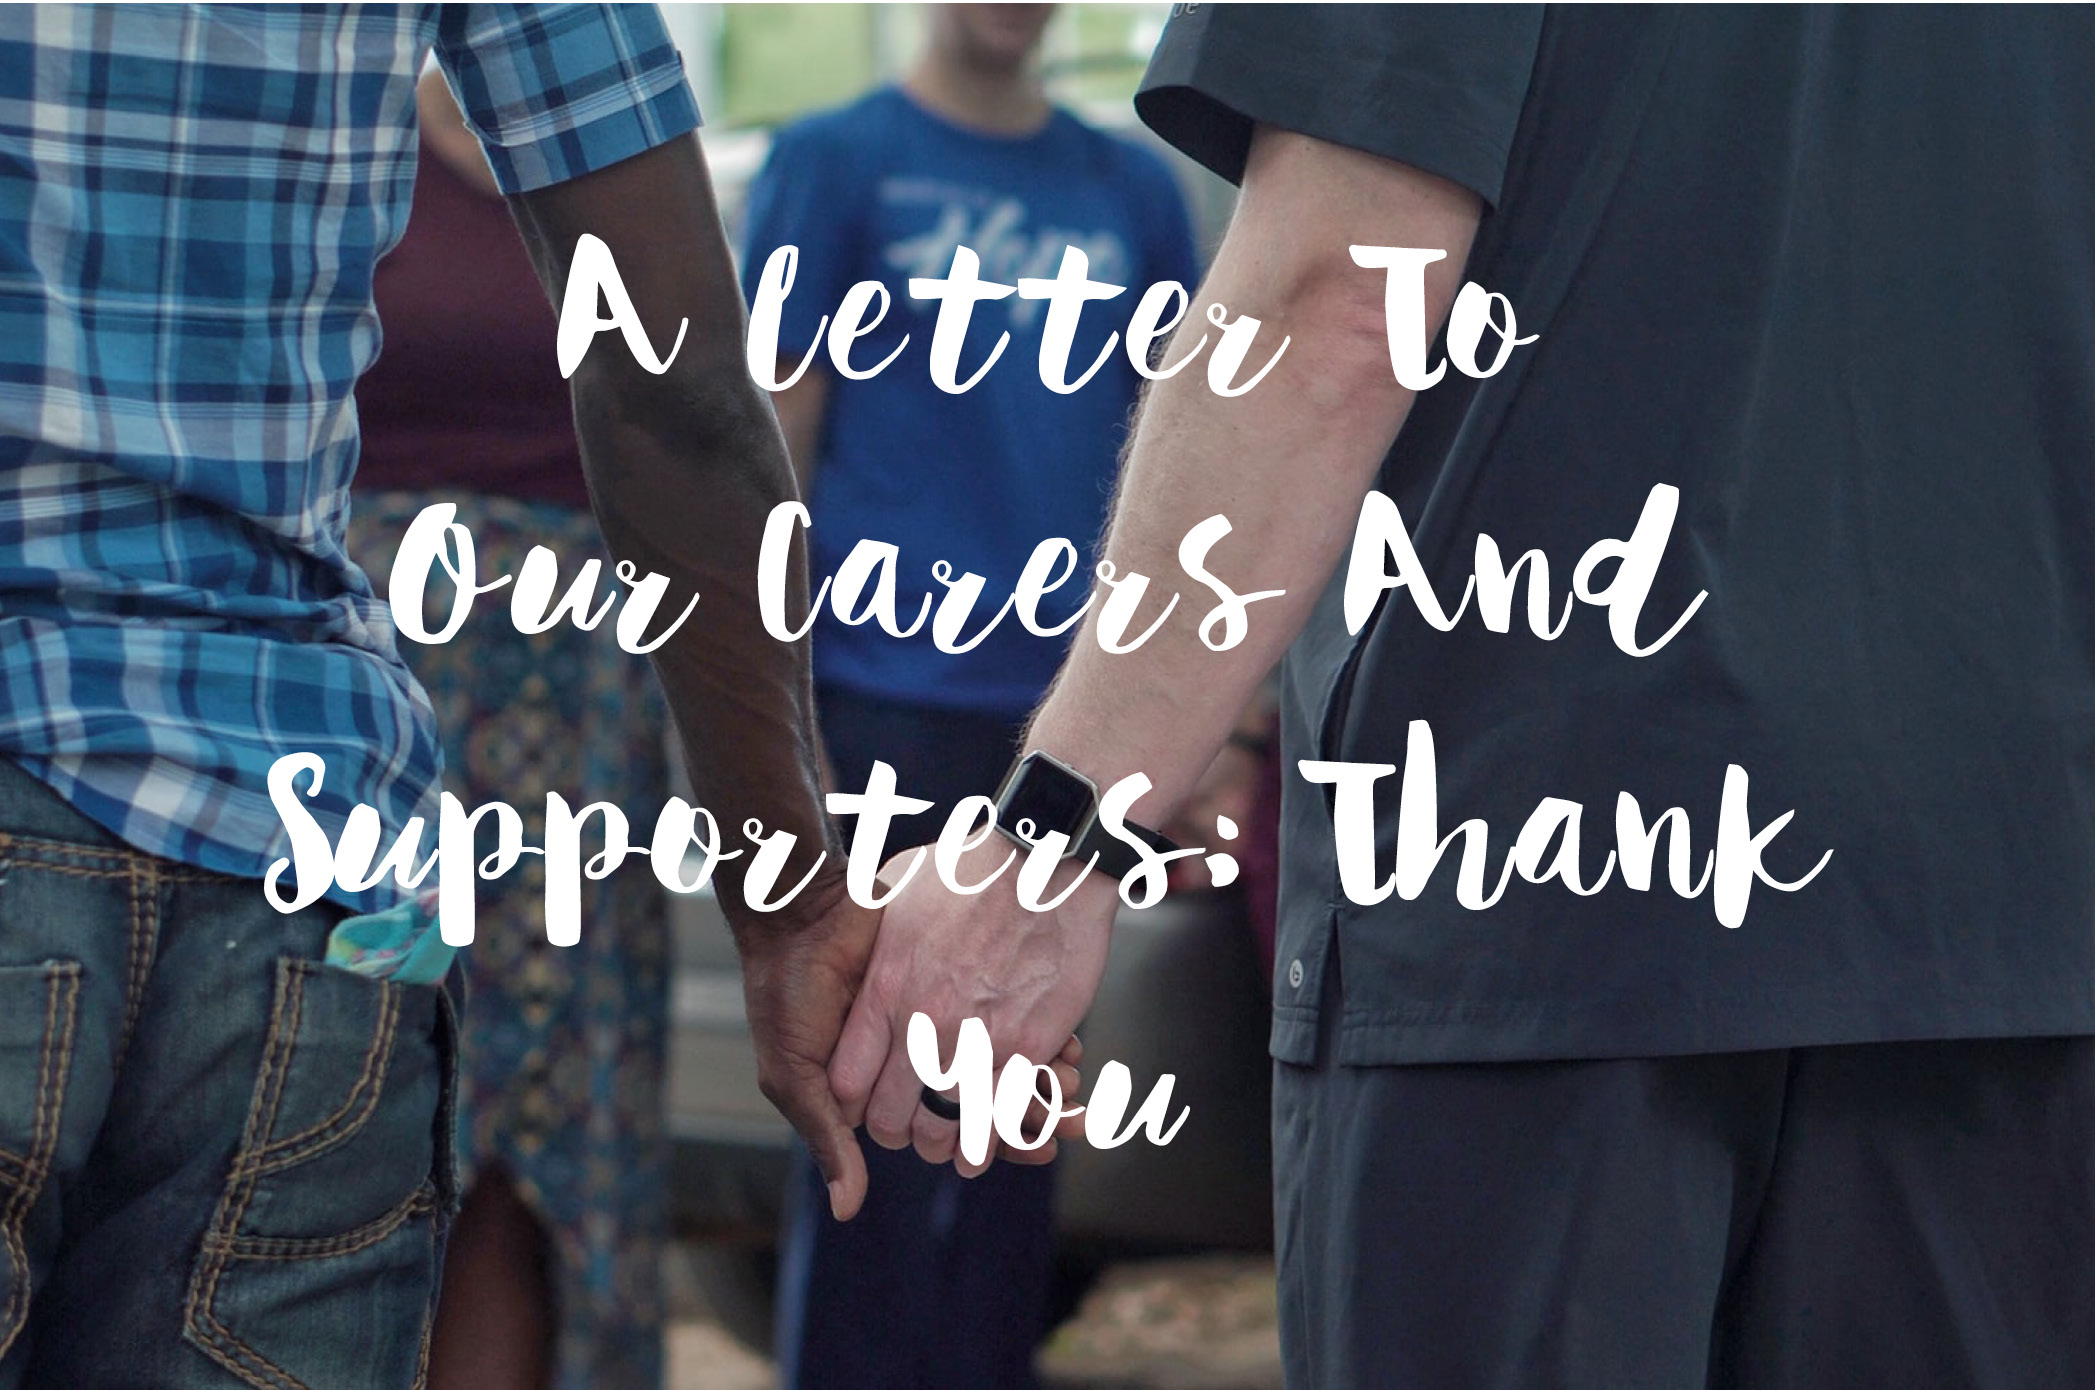 A Letter To Our Carers And Supporters Thank You